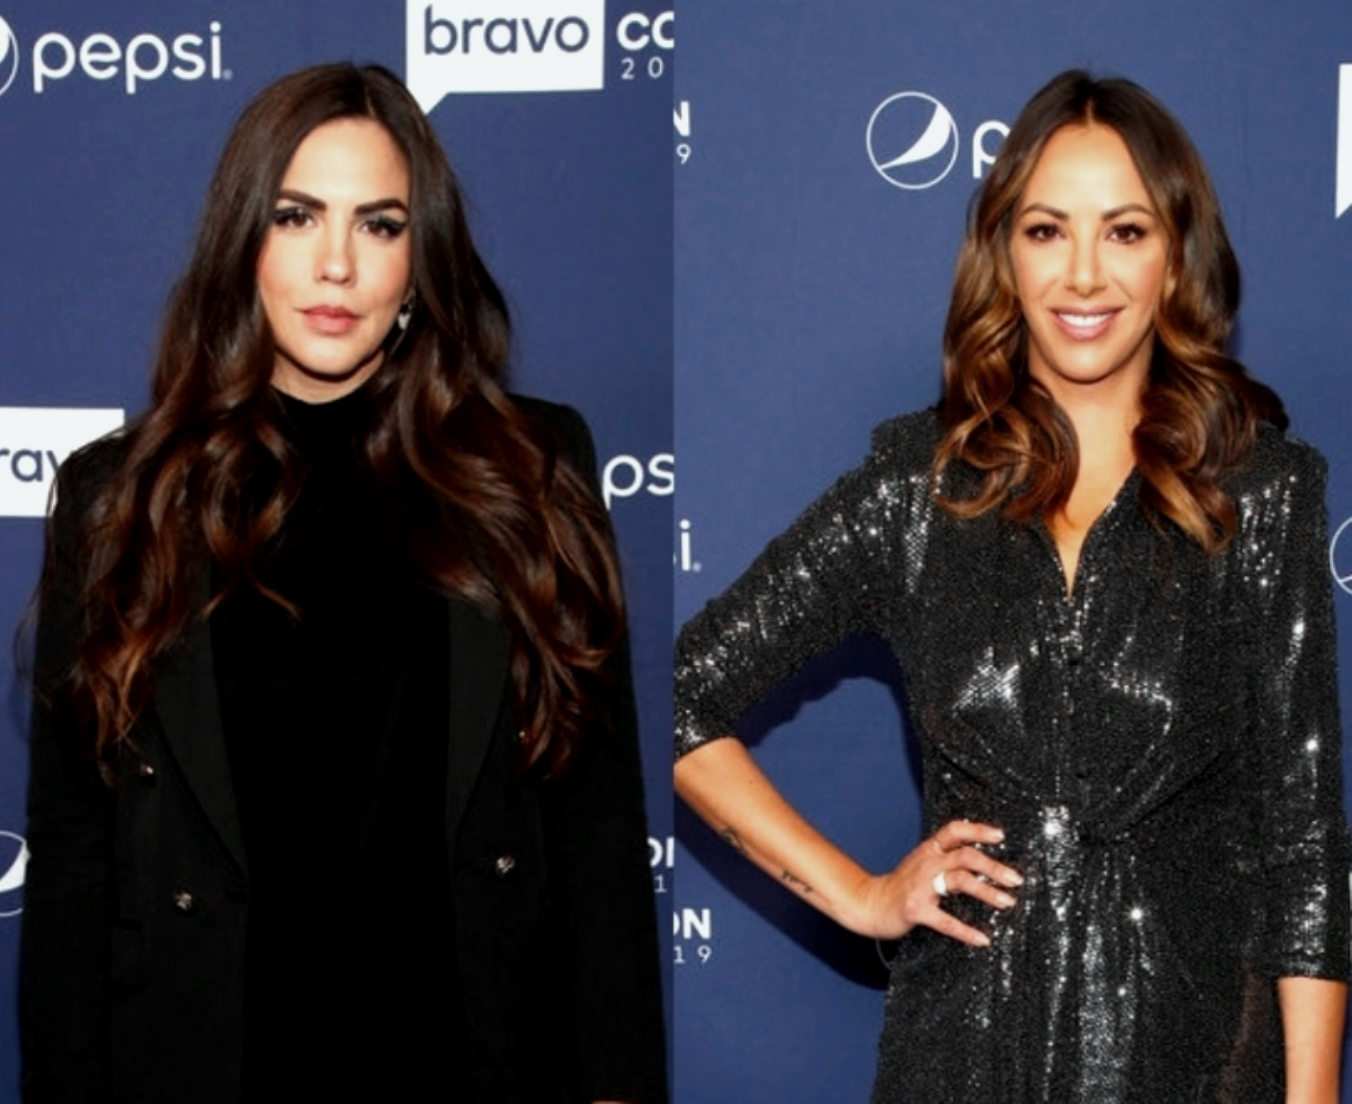 Vanderpump Rules Star Katie Maloney Claps Back at Kristen Doute's Claim That She Has Nothing Going On, Teases New Project and Reacts to Show Montage